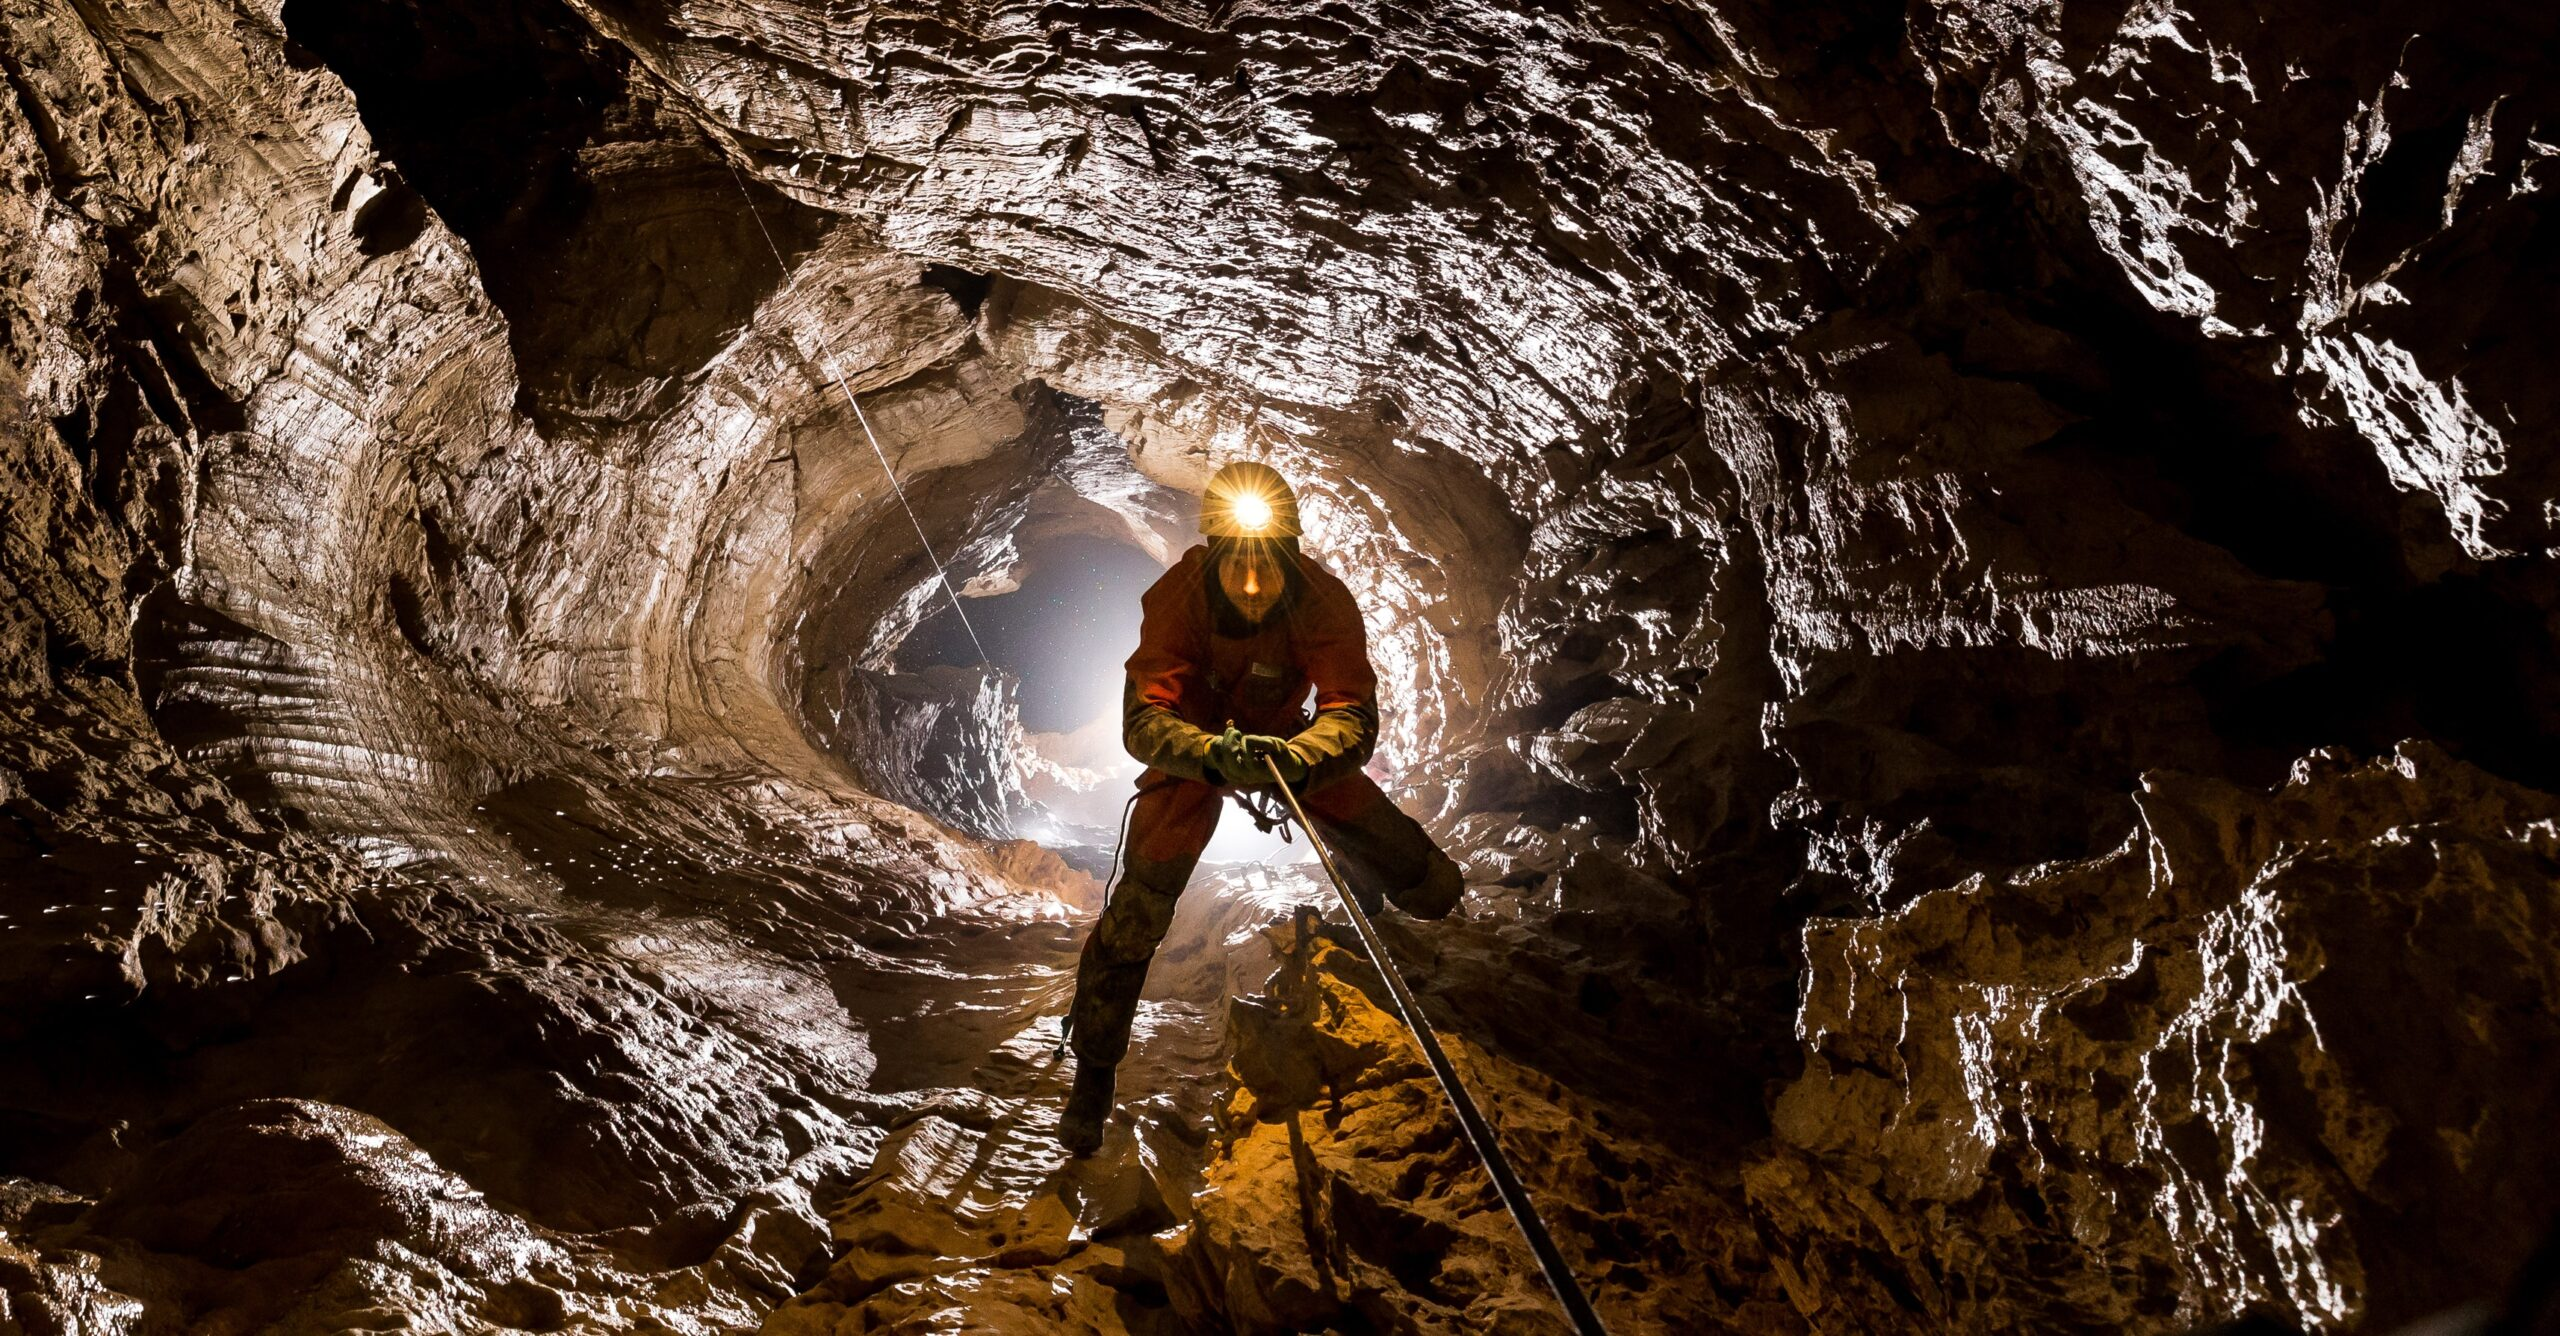 10 must-knows about the world's deepest cave Krubera Voronya